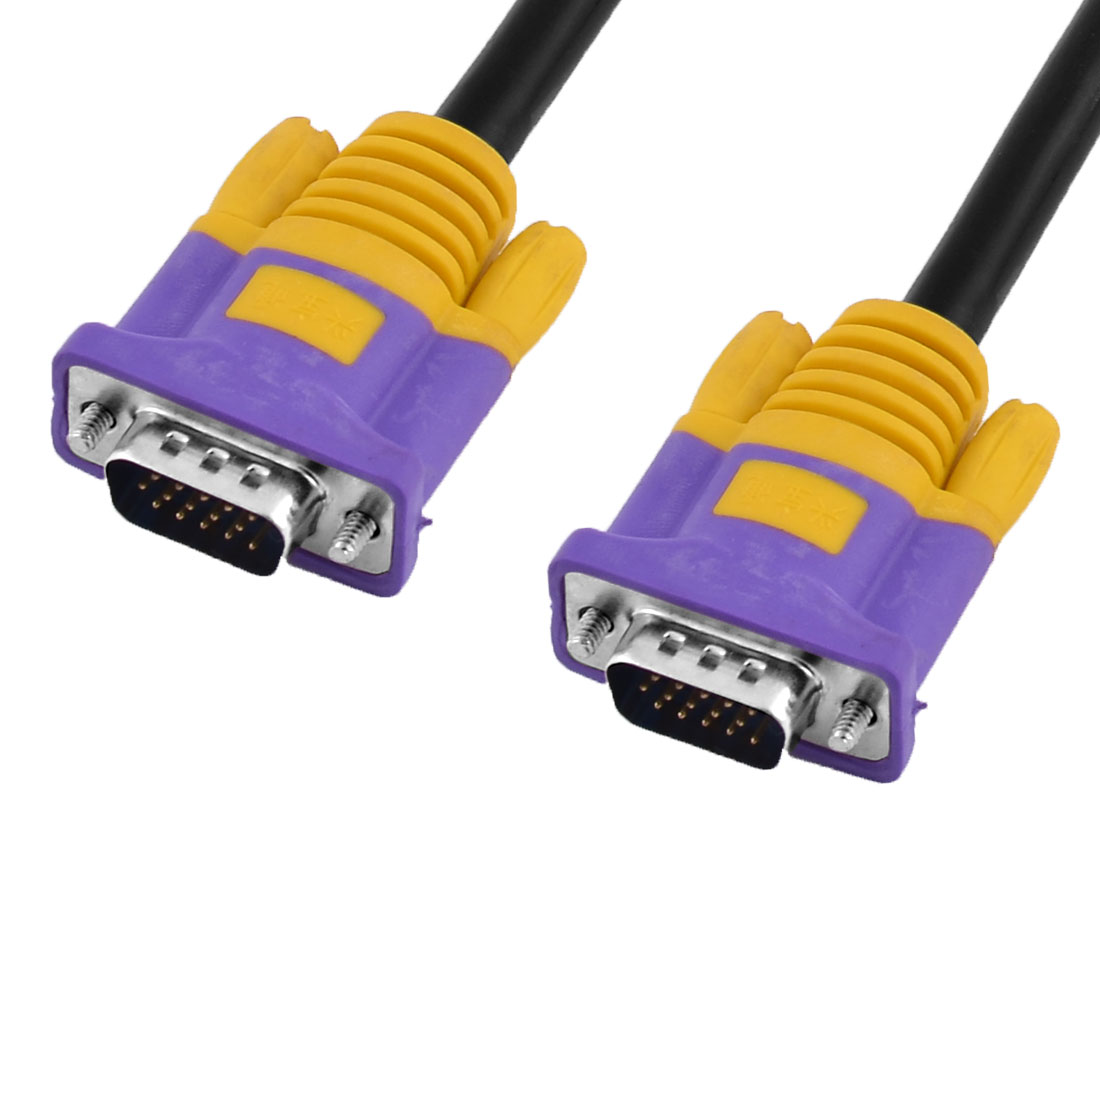 5Ft HD 15pin Male to Male M/M VGA Monitor Extension Cable Cord